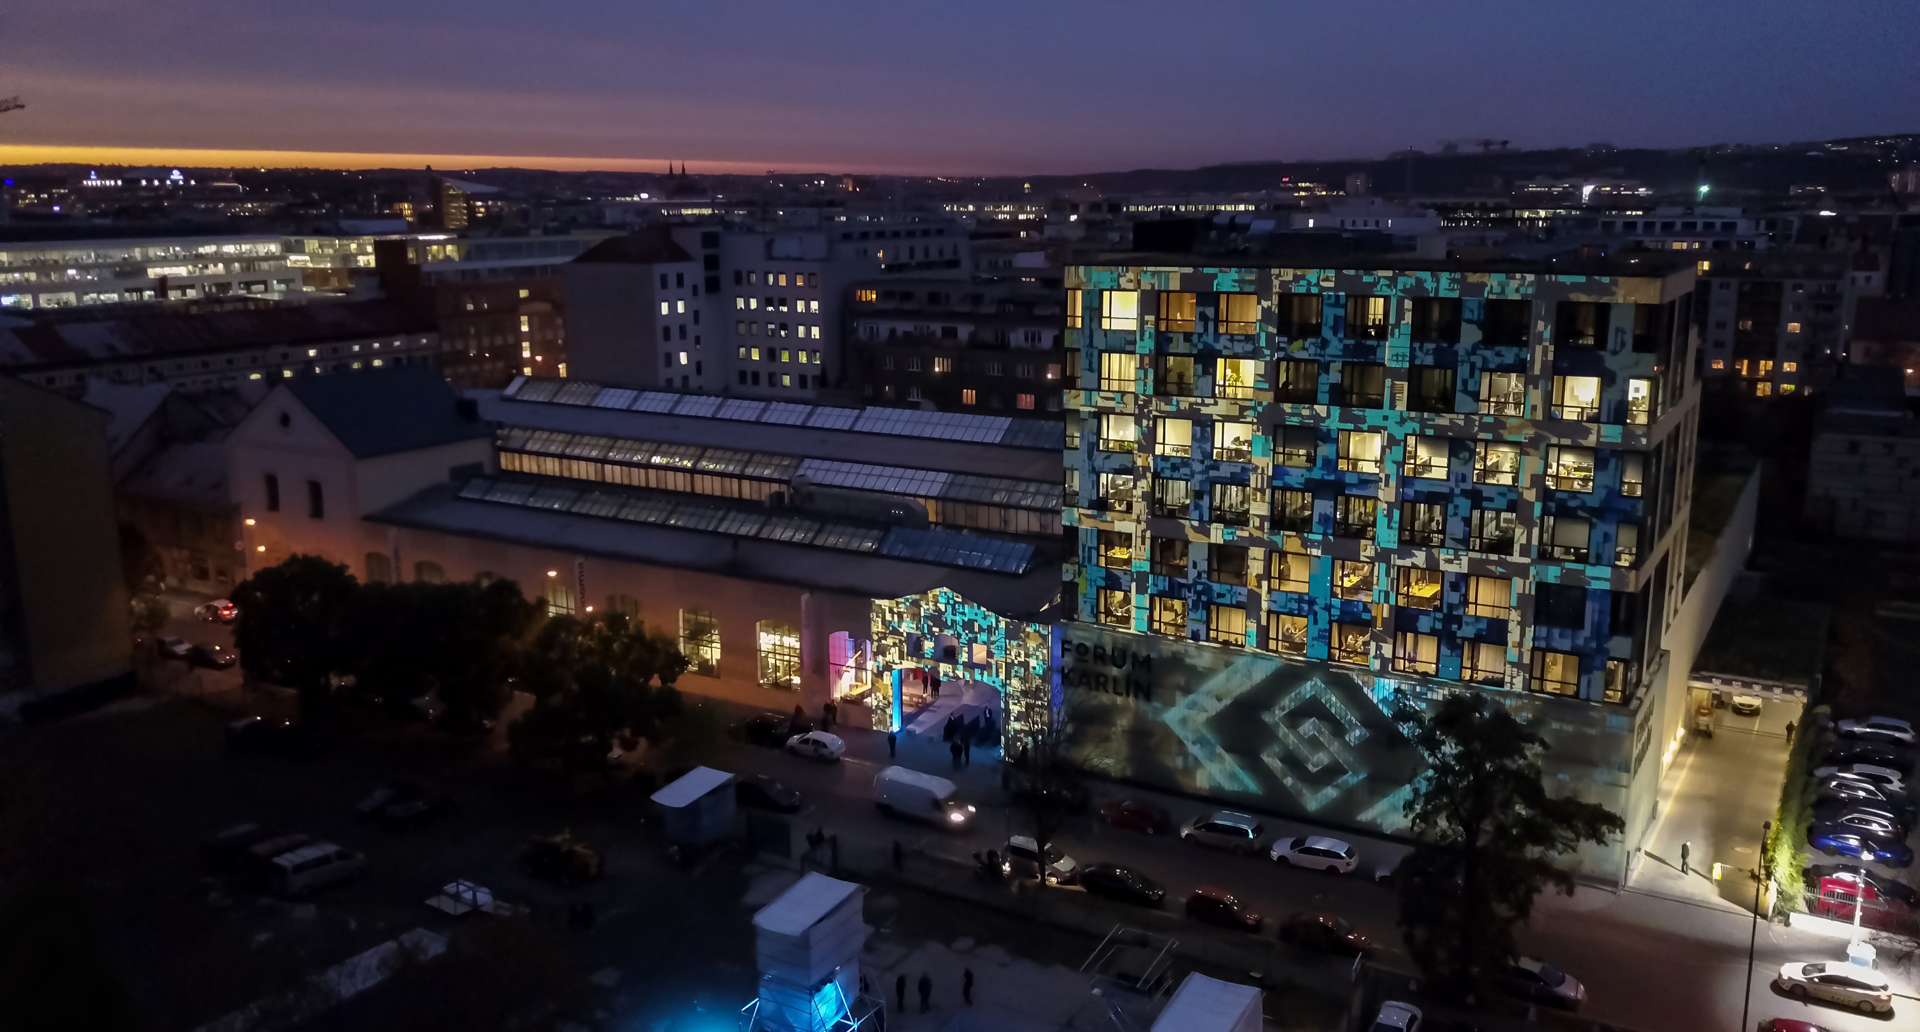 A drone shot of the outside of the building during the Blockchains LLC launch